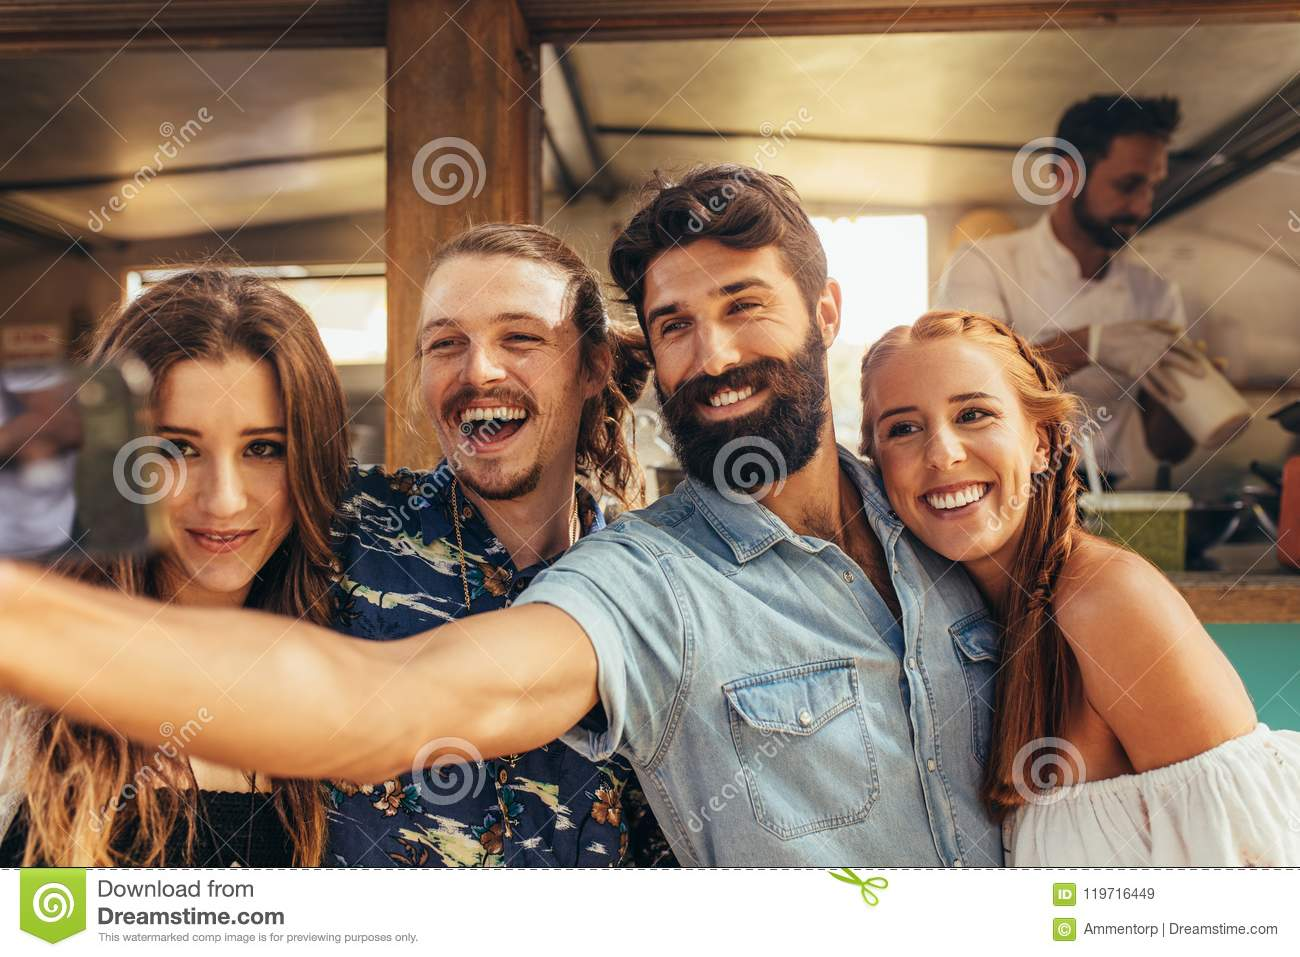 33178a6dfe1a5 Handsome young men taking selfie with friends. Group of men and women  making selfie at summer festival.